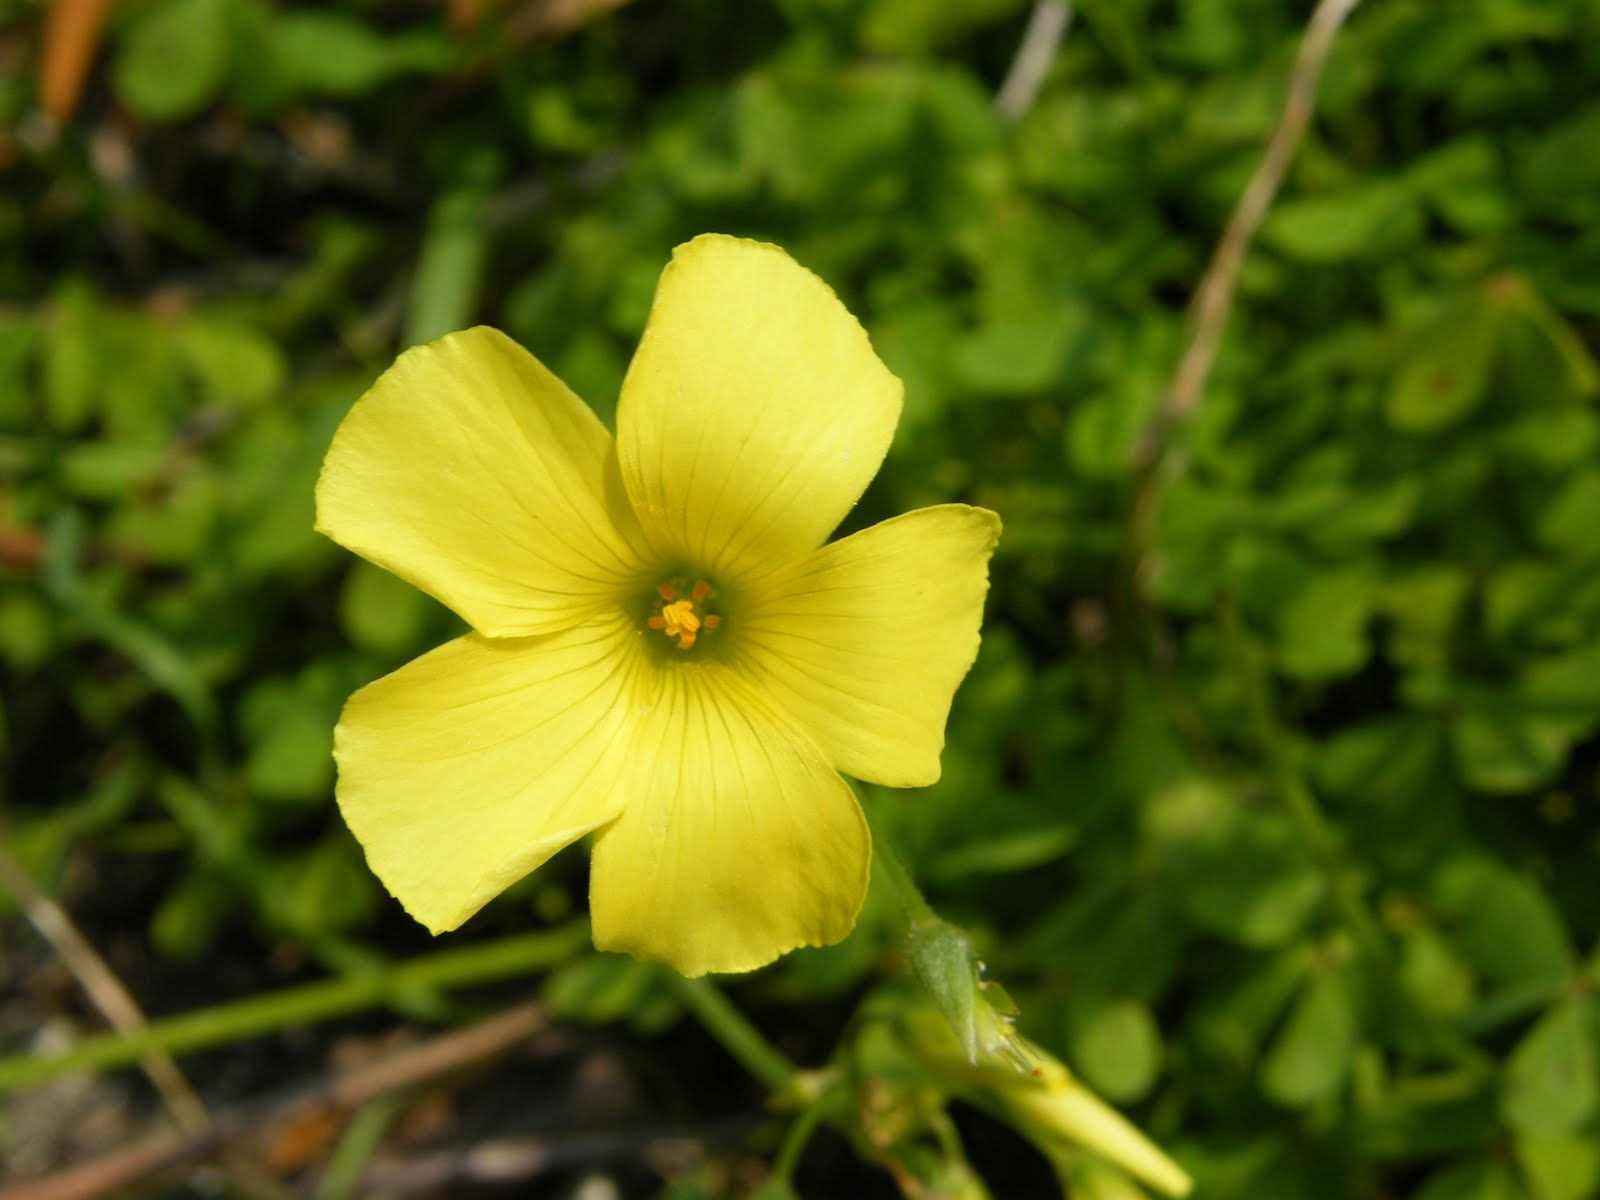 Wassard elea the nameless yellow flowers of the cilento these yellow flowers are all over the place at the minute i dont know what they are called carpets of them under the olive trees it doesnt come out mightylinksfo